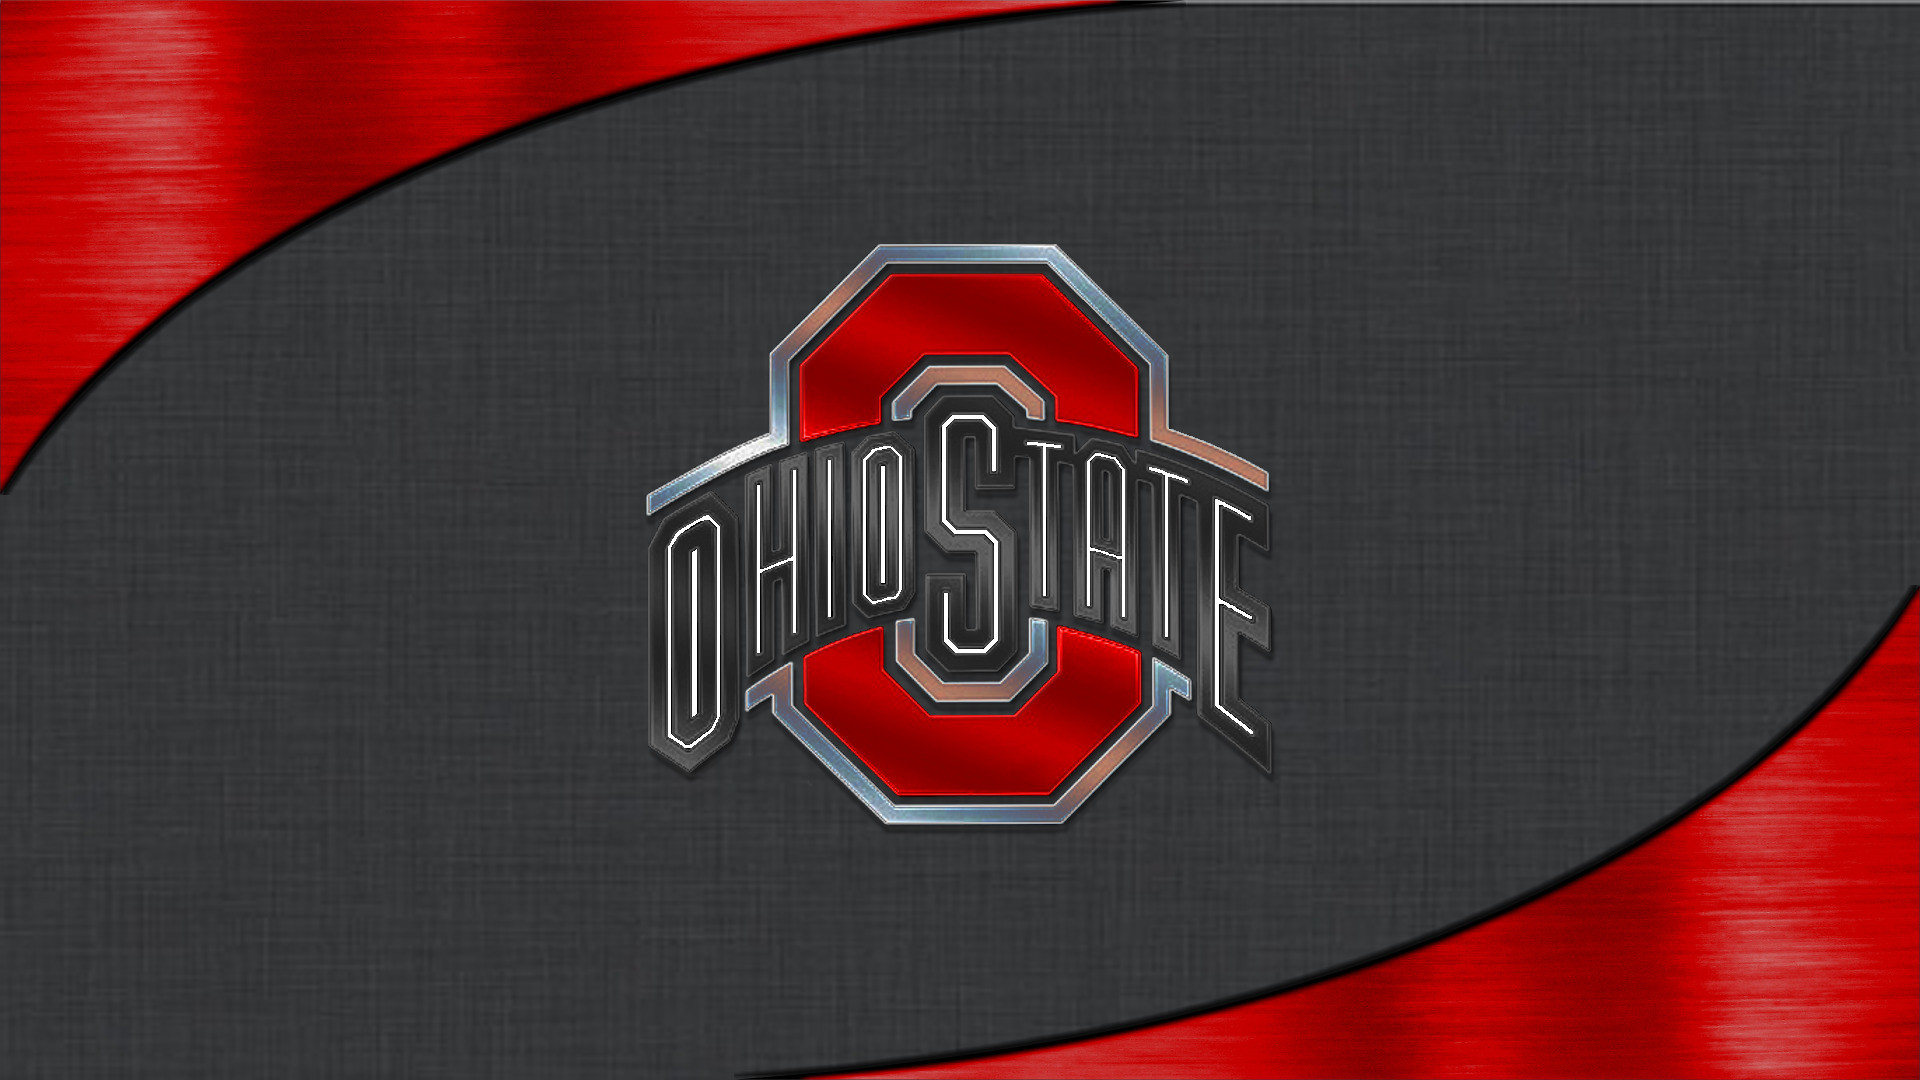 1920x1080 OSU Wallpaper 650 - Ohio State Football Wallpaper (35112652) - Fanpop